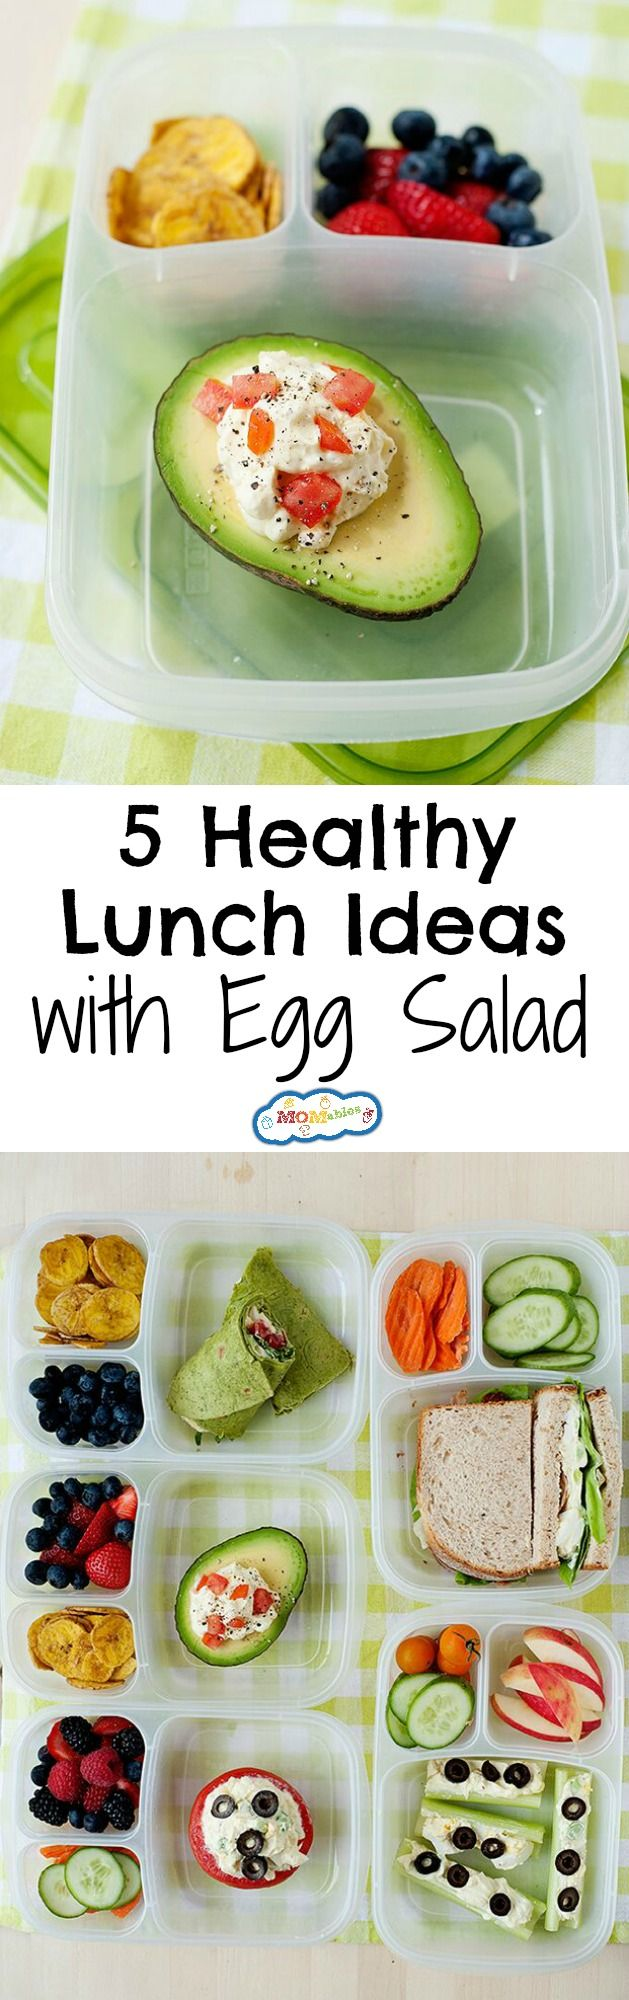 517 best office lunch images on pinterest clean eating meals healthy school and office lunch ideas with egg salad forumfinder Gallery